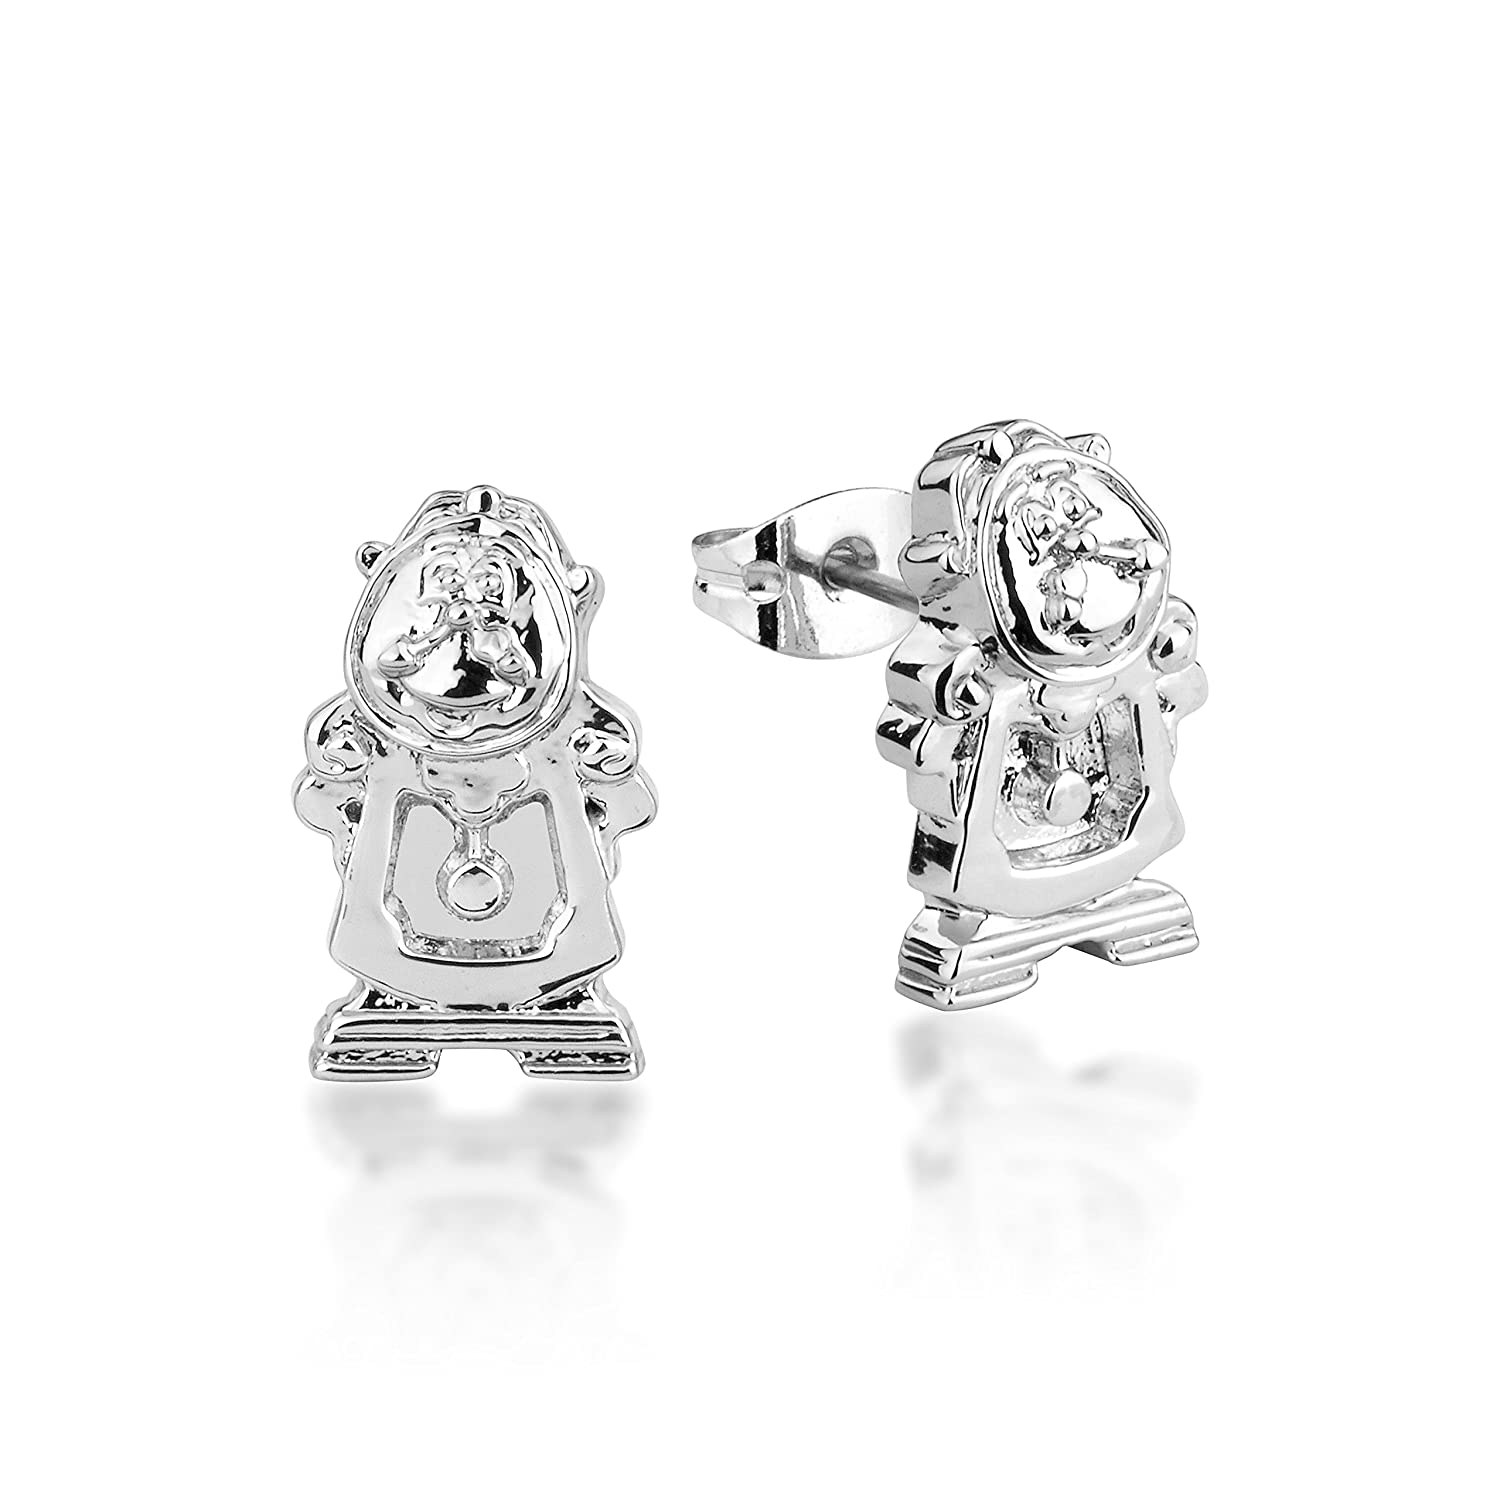 a62b4fde8 Disney Beauty & the Beast White Gold-Plated Cogsworth Clock Stud Earrings  by Couture Kingdom: Amazon.co.uk: Jewellery